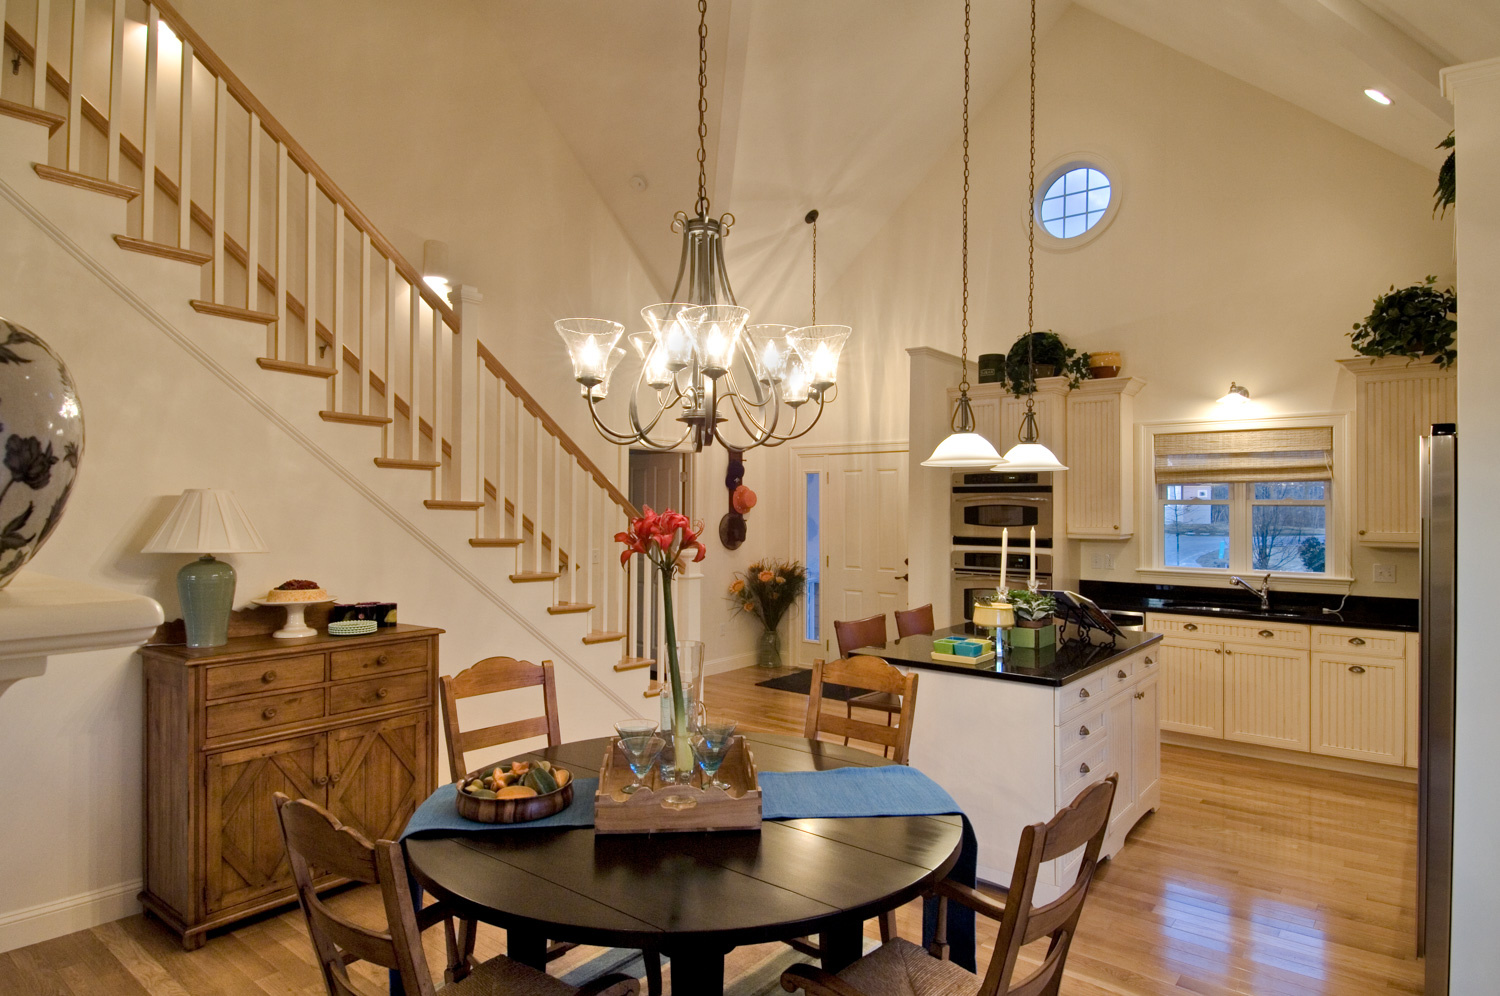 Northshore Dining Room & Kitchen